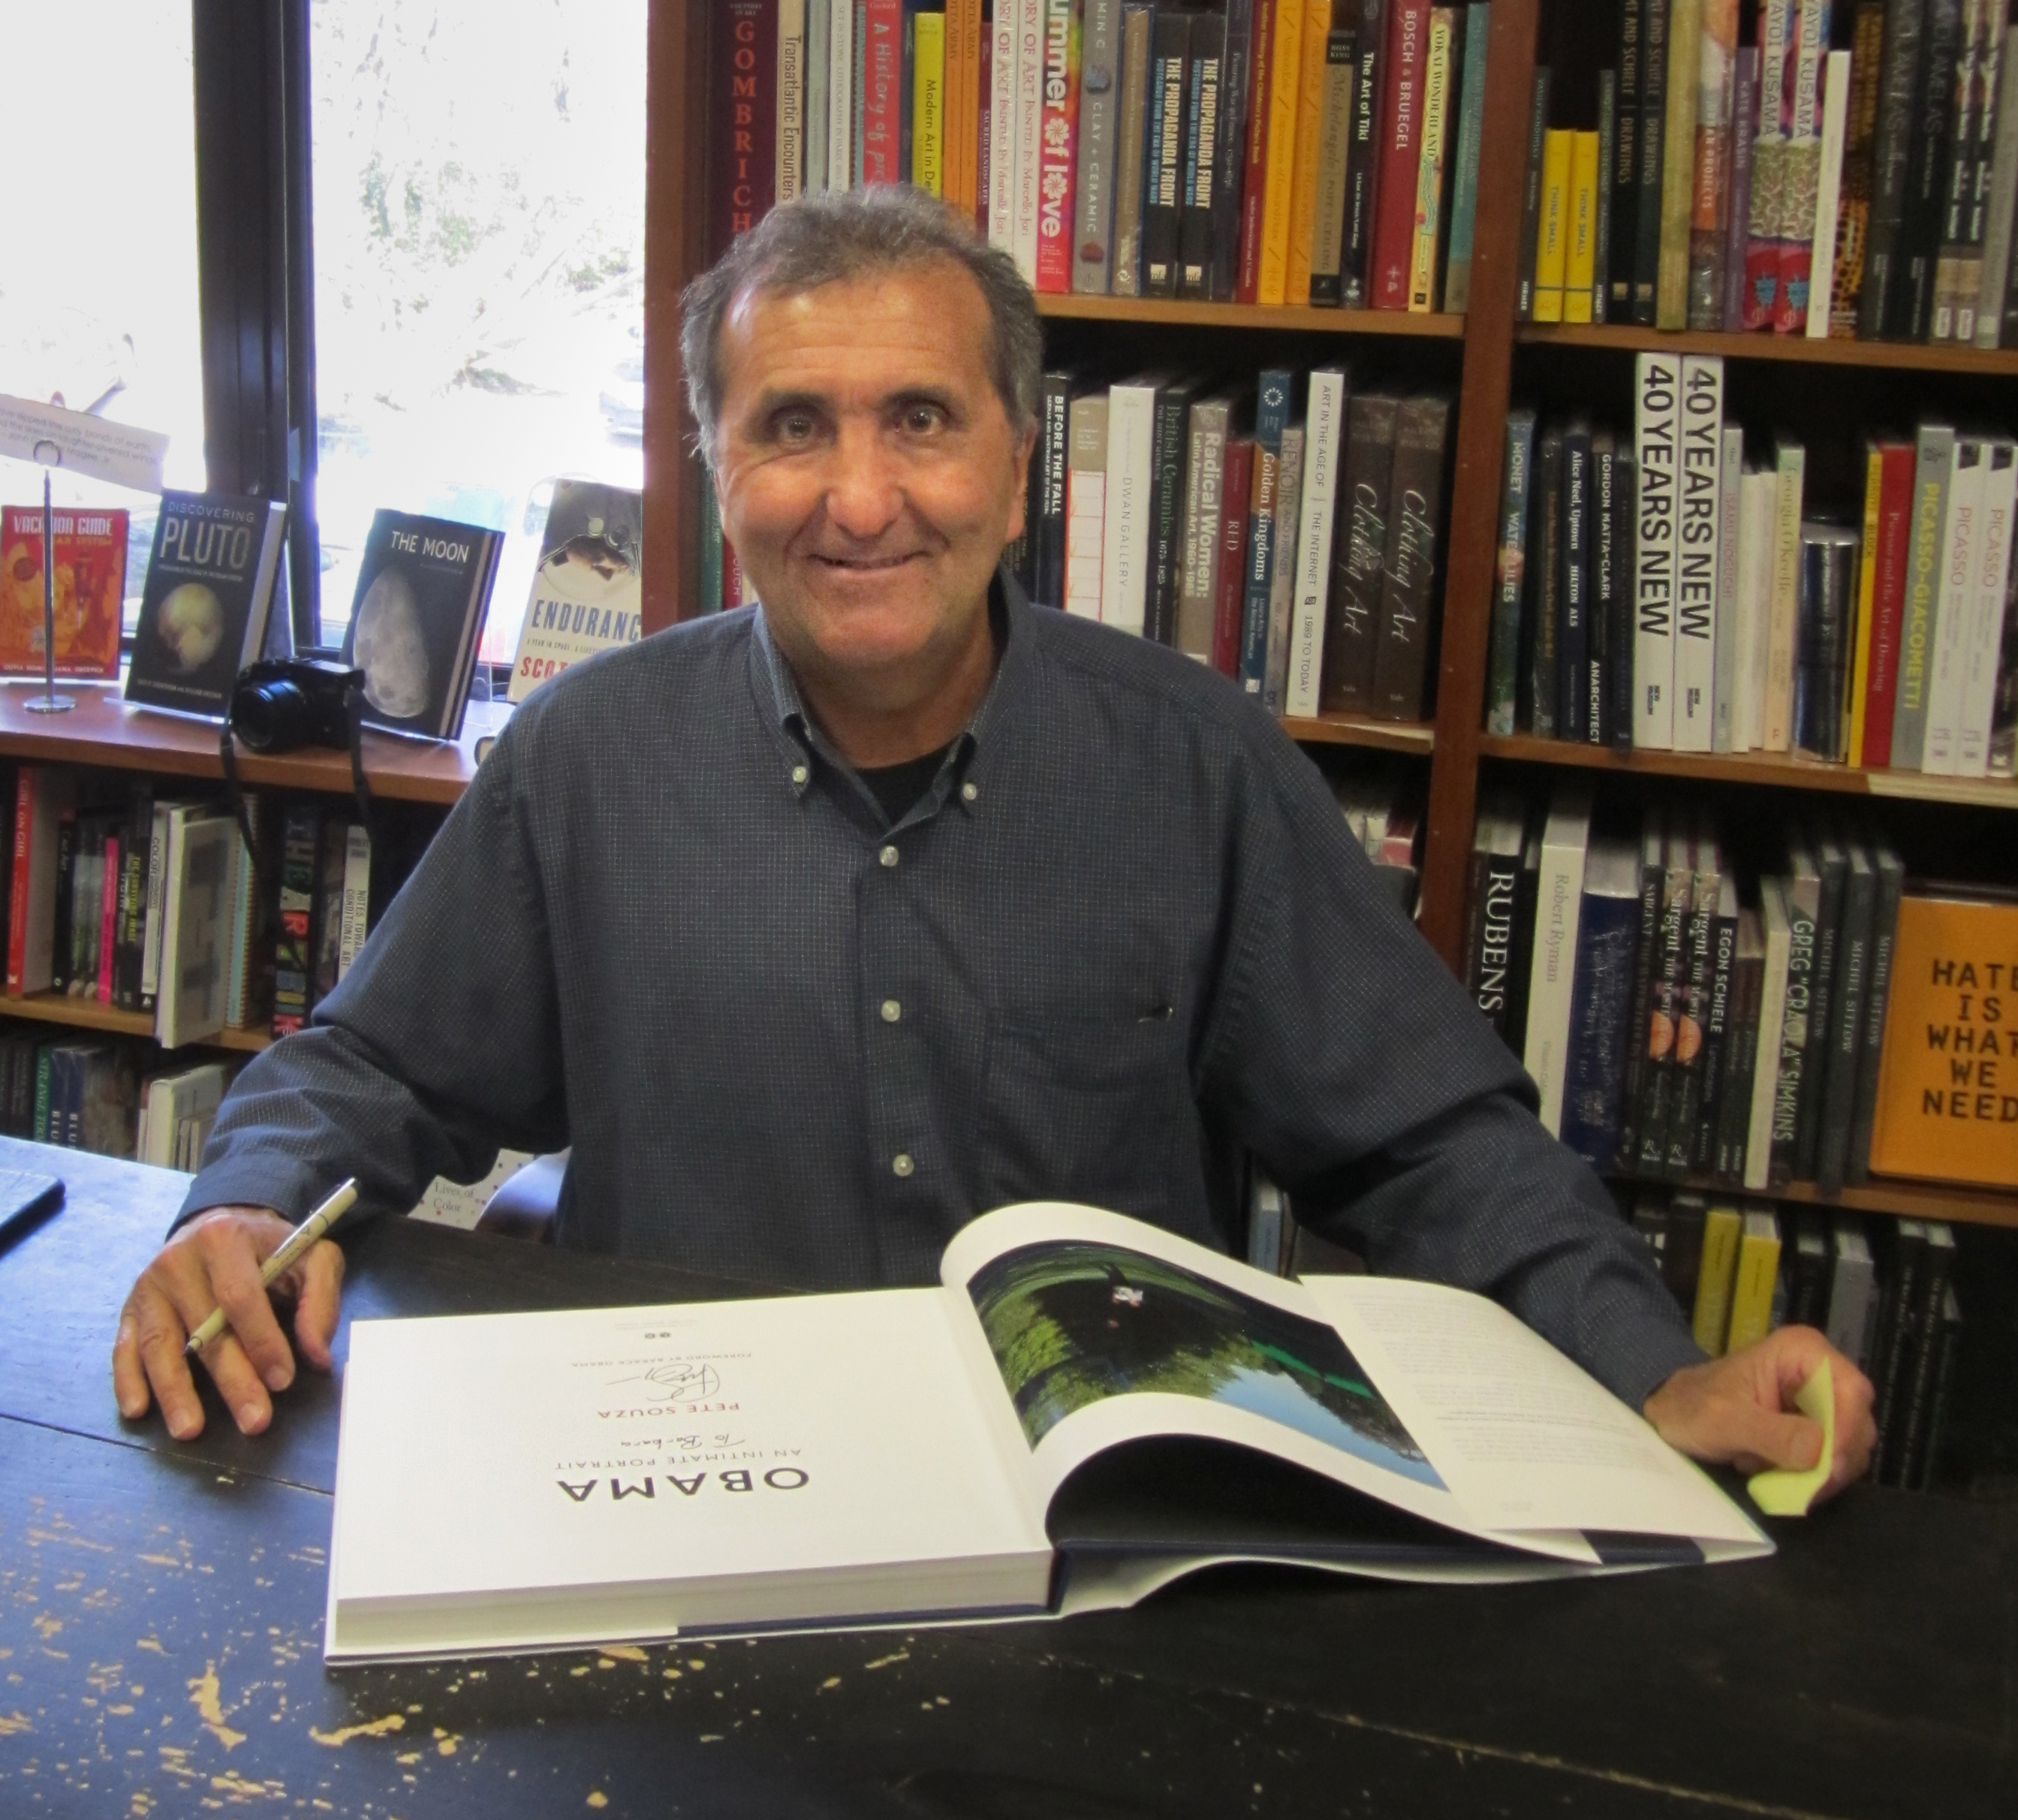 Image of Pete Souza from Wikidata